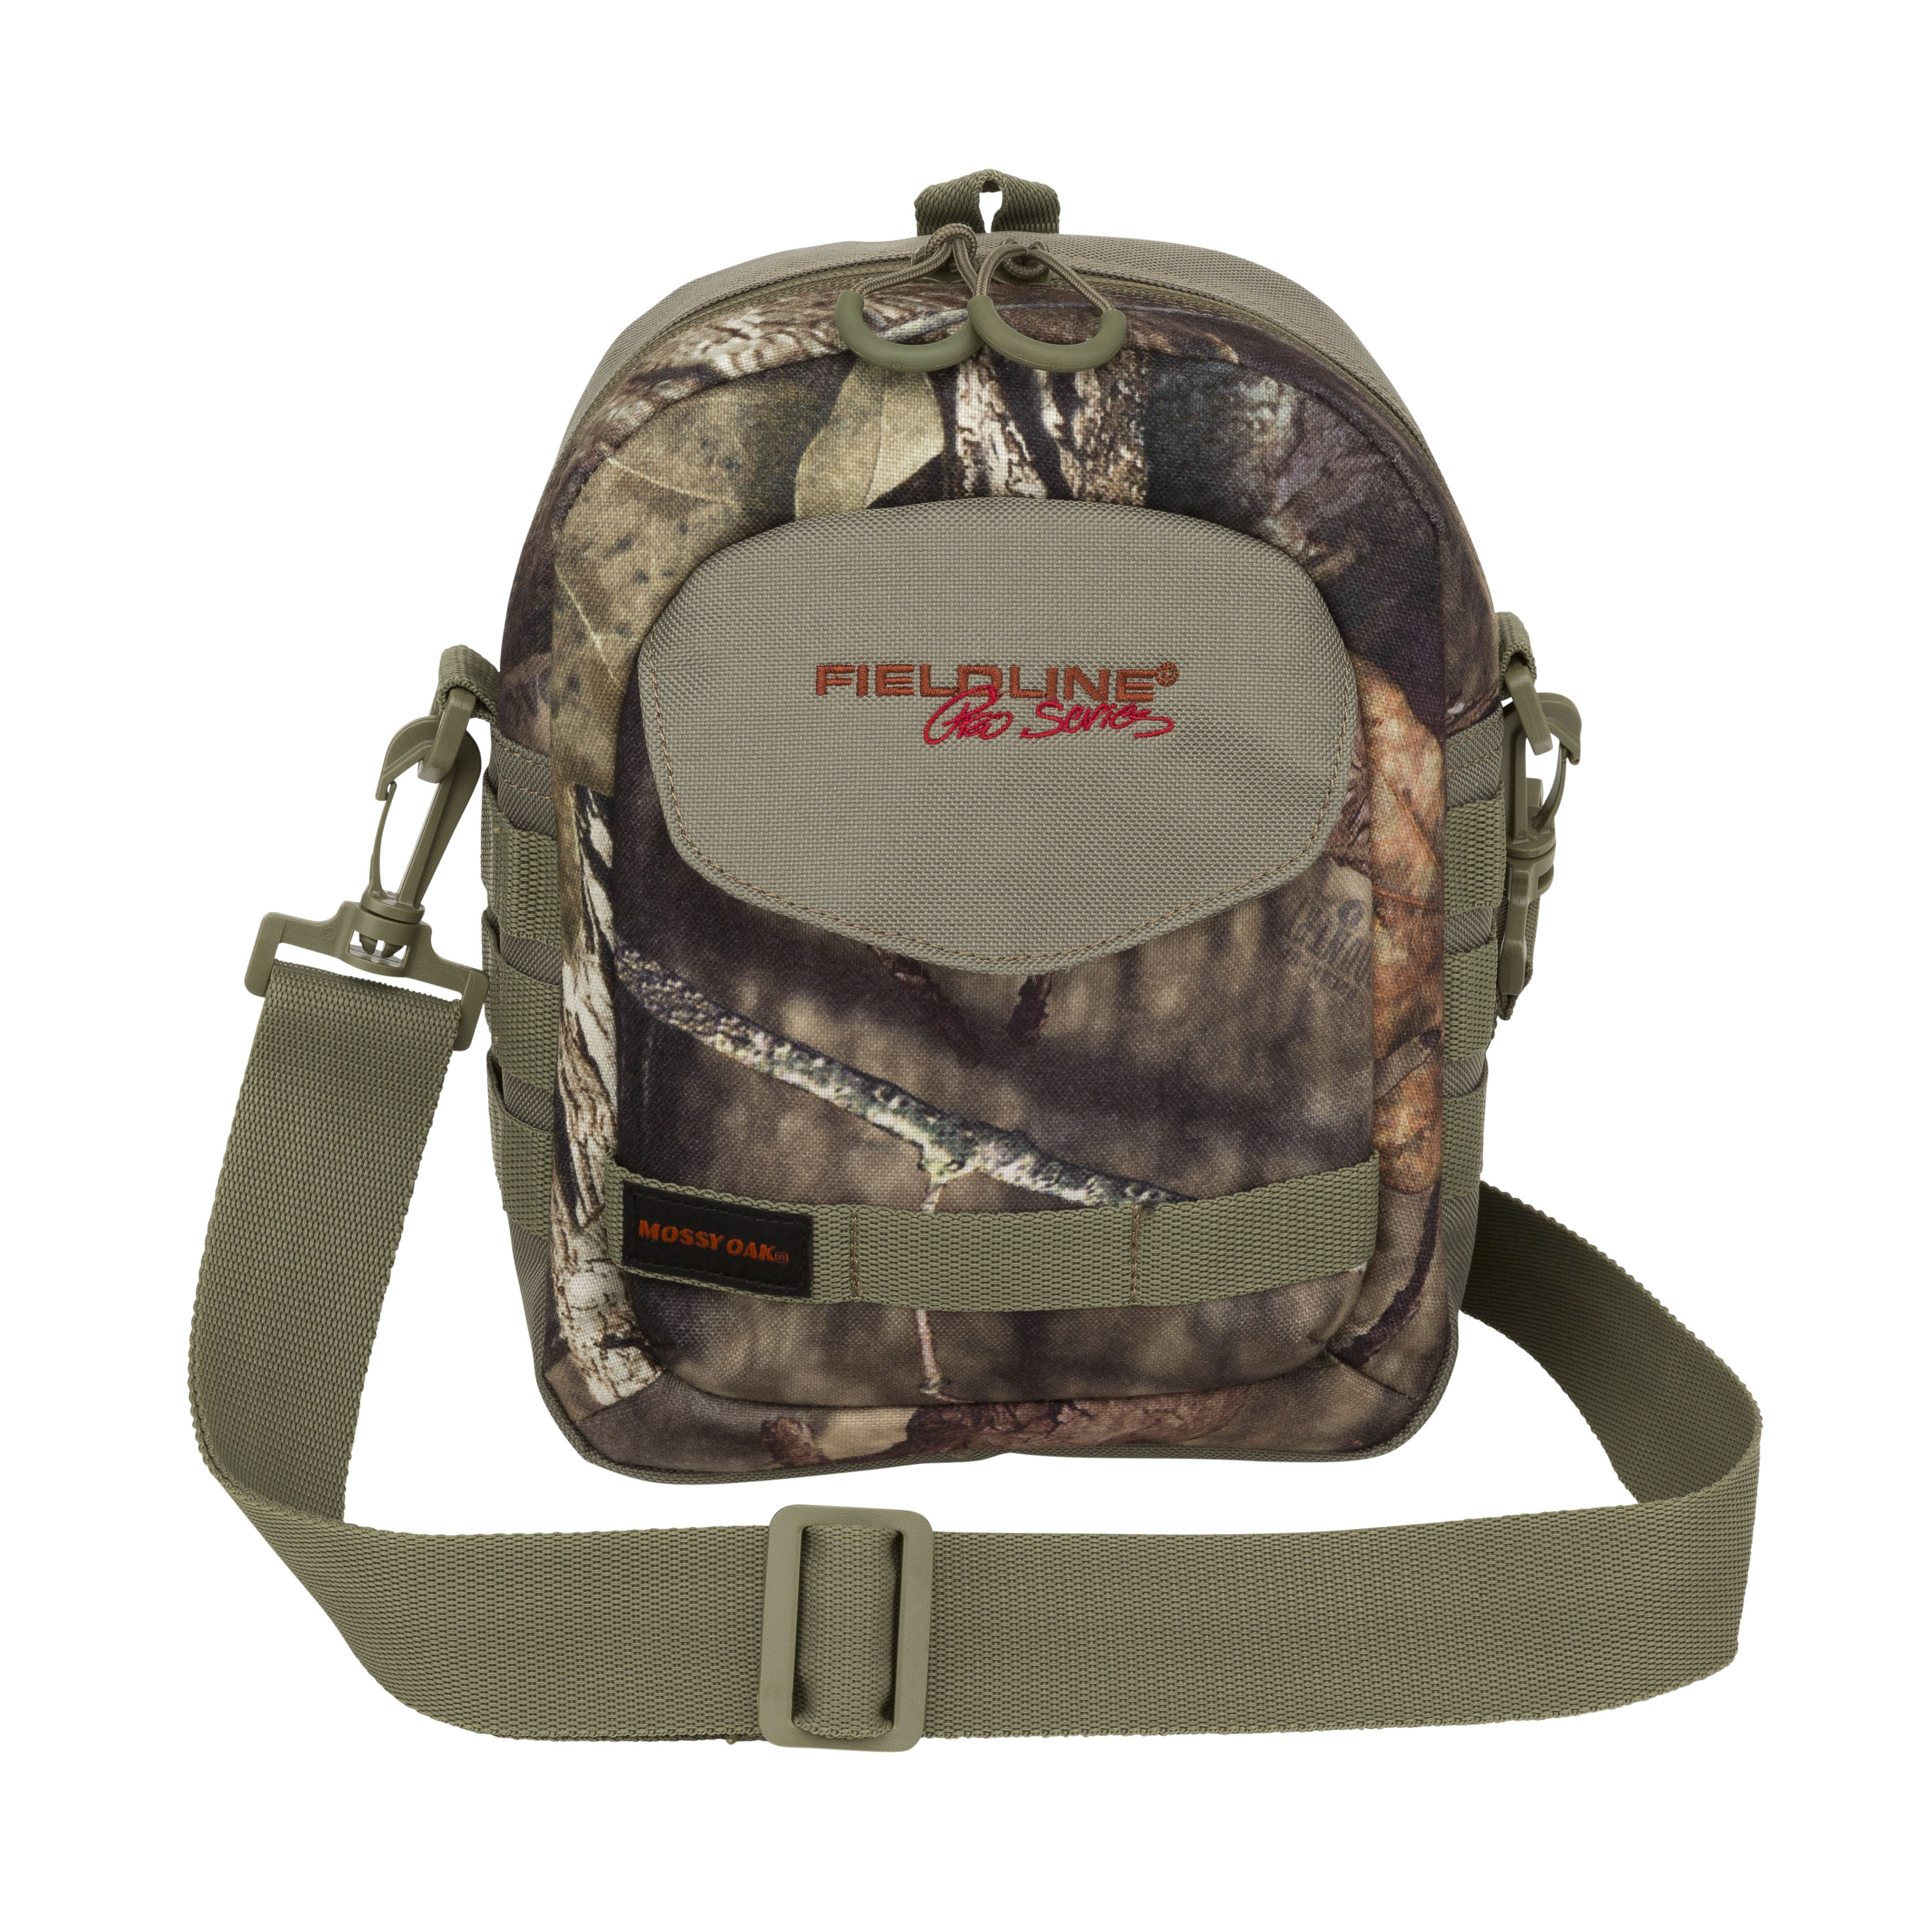 Fieldline Pro Series Optics Hunting Bag, Mossy Oak Break Up Country Camouflage